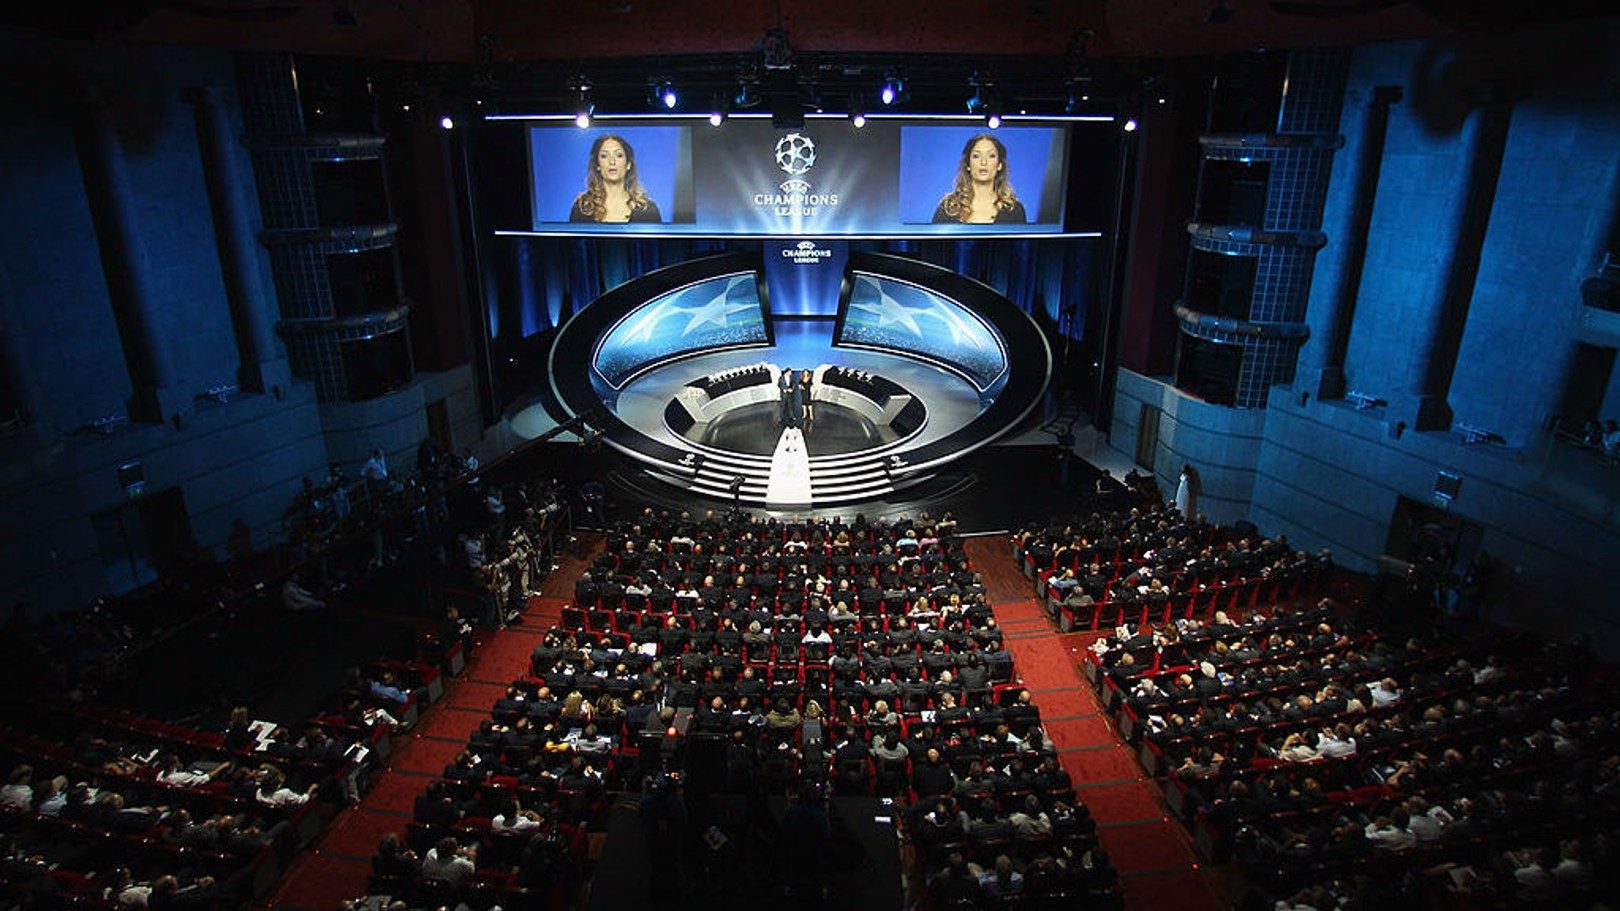 GRIMALDI FORUM: Venue for the 2017/18 Champions League group stage draw.